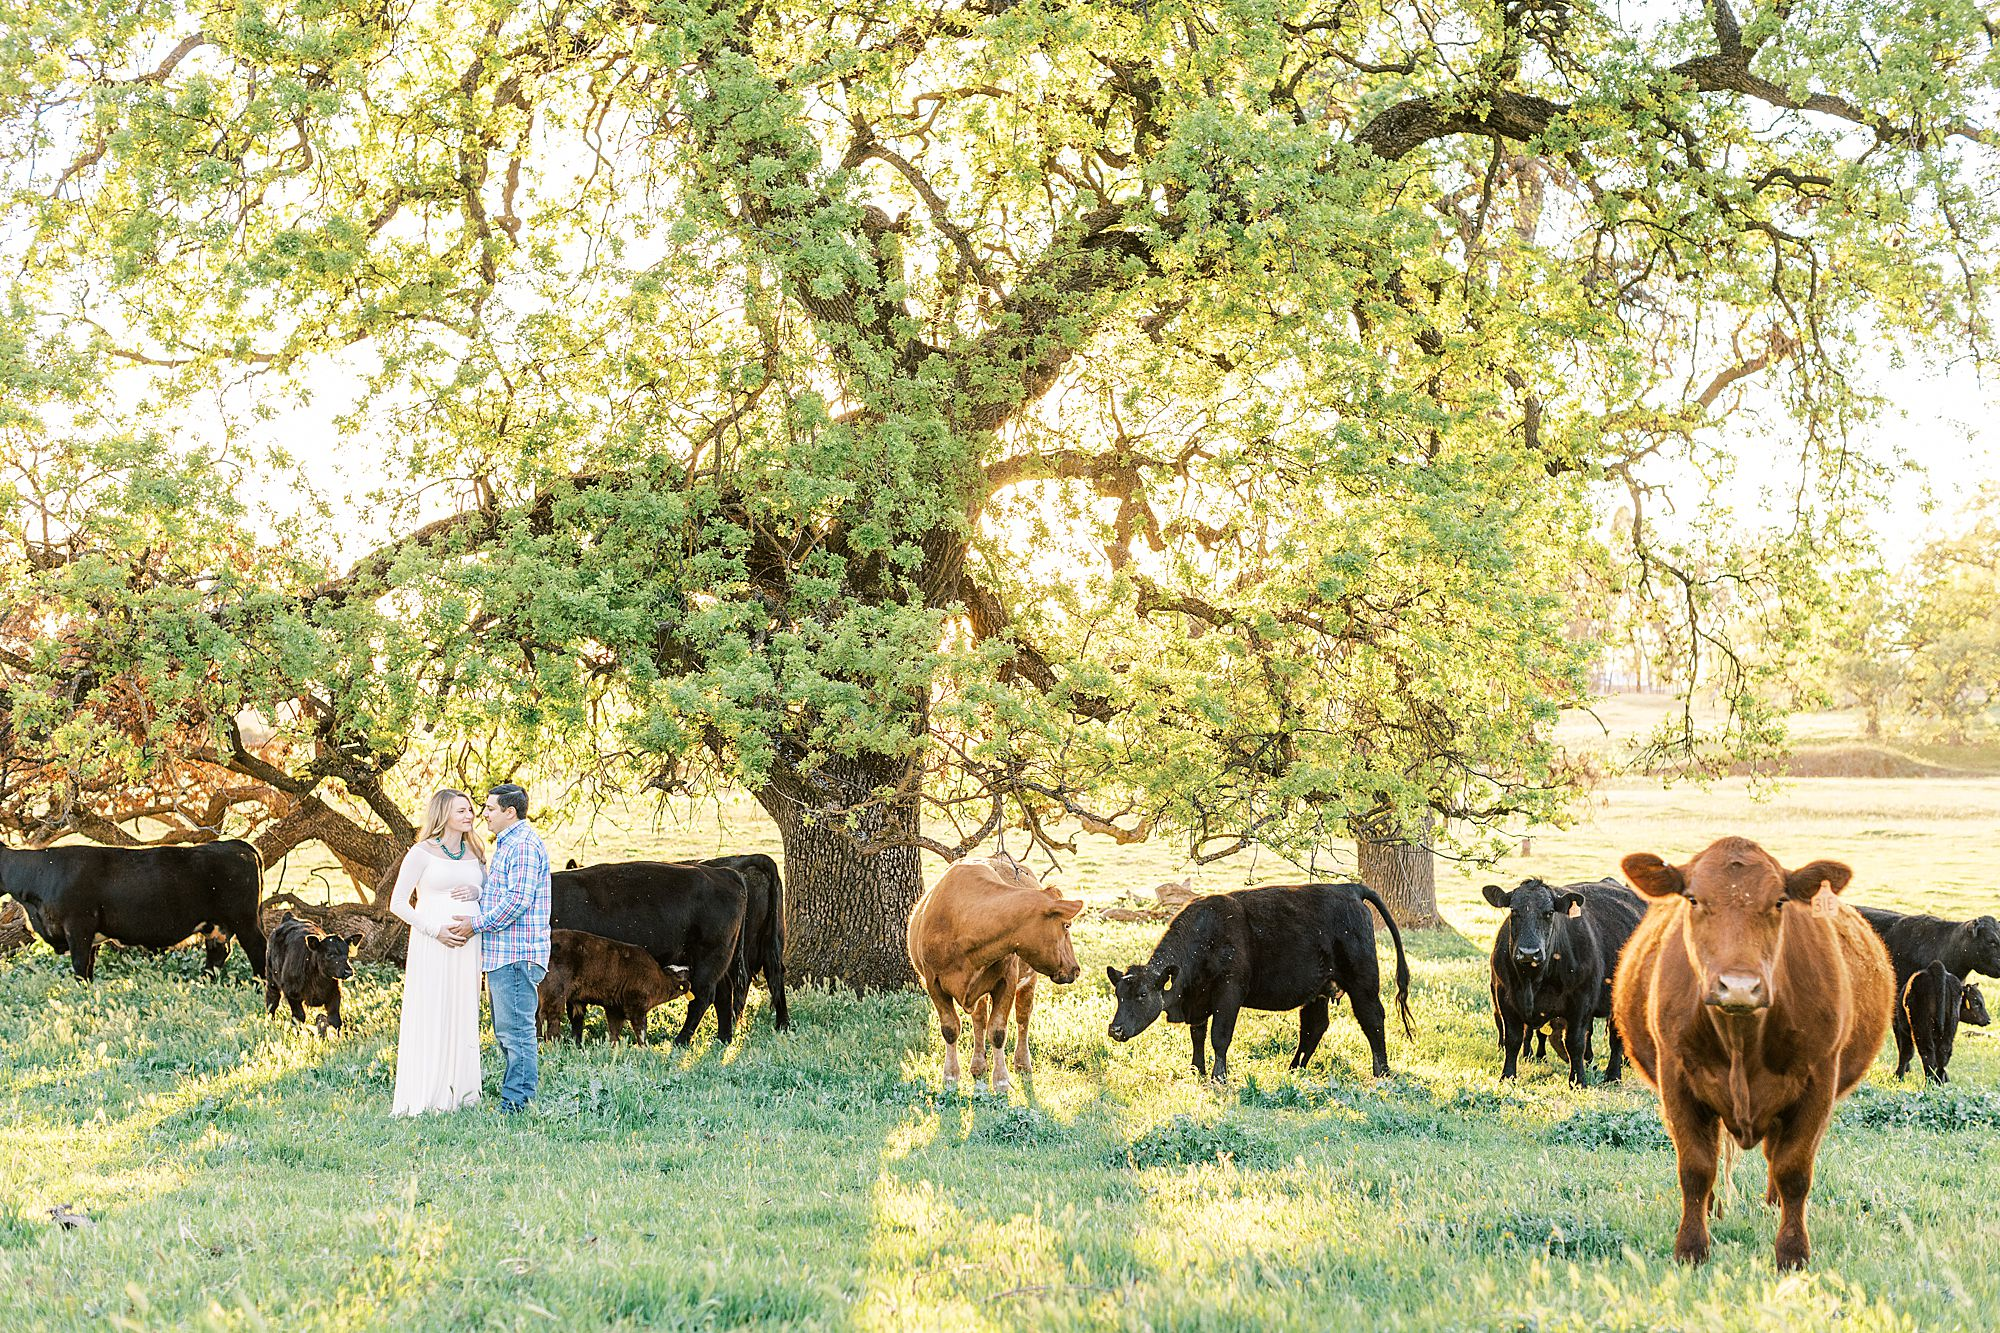 Sheridan Maternity Session - Lexie and Nick - Sacramento Maternity Photos by Ashley Baumgartner - Farmland, 4H Maternity with Cows_0017.jpg